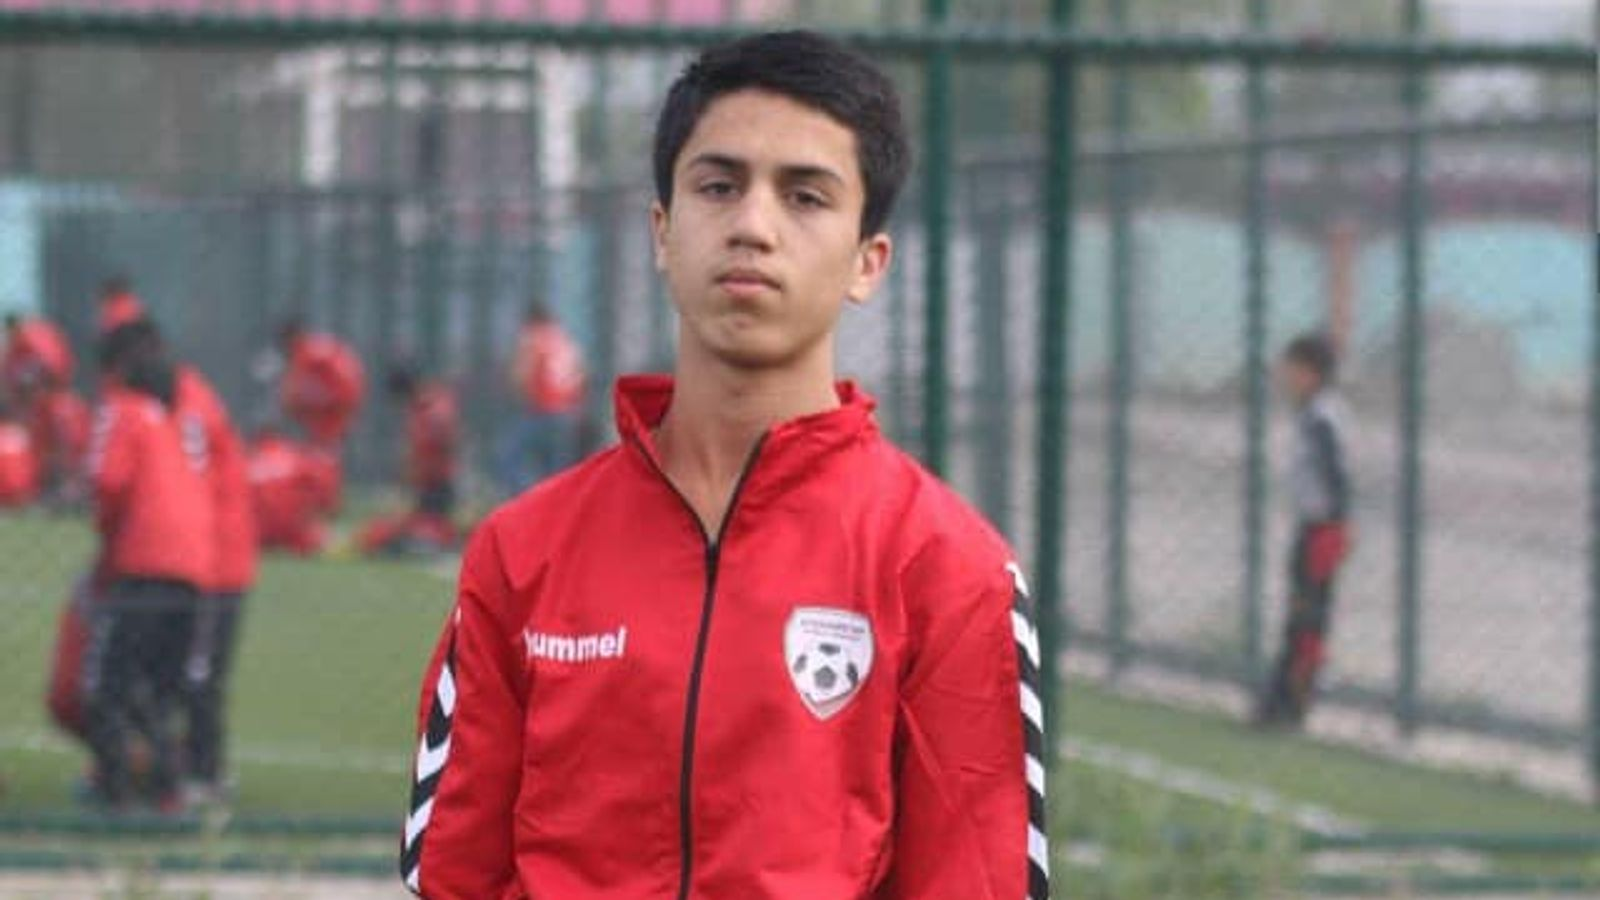 19-year-old footballer Zaki Anwari fell to death from a US plane